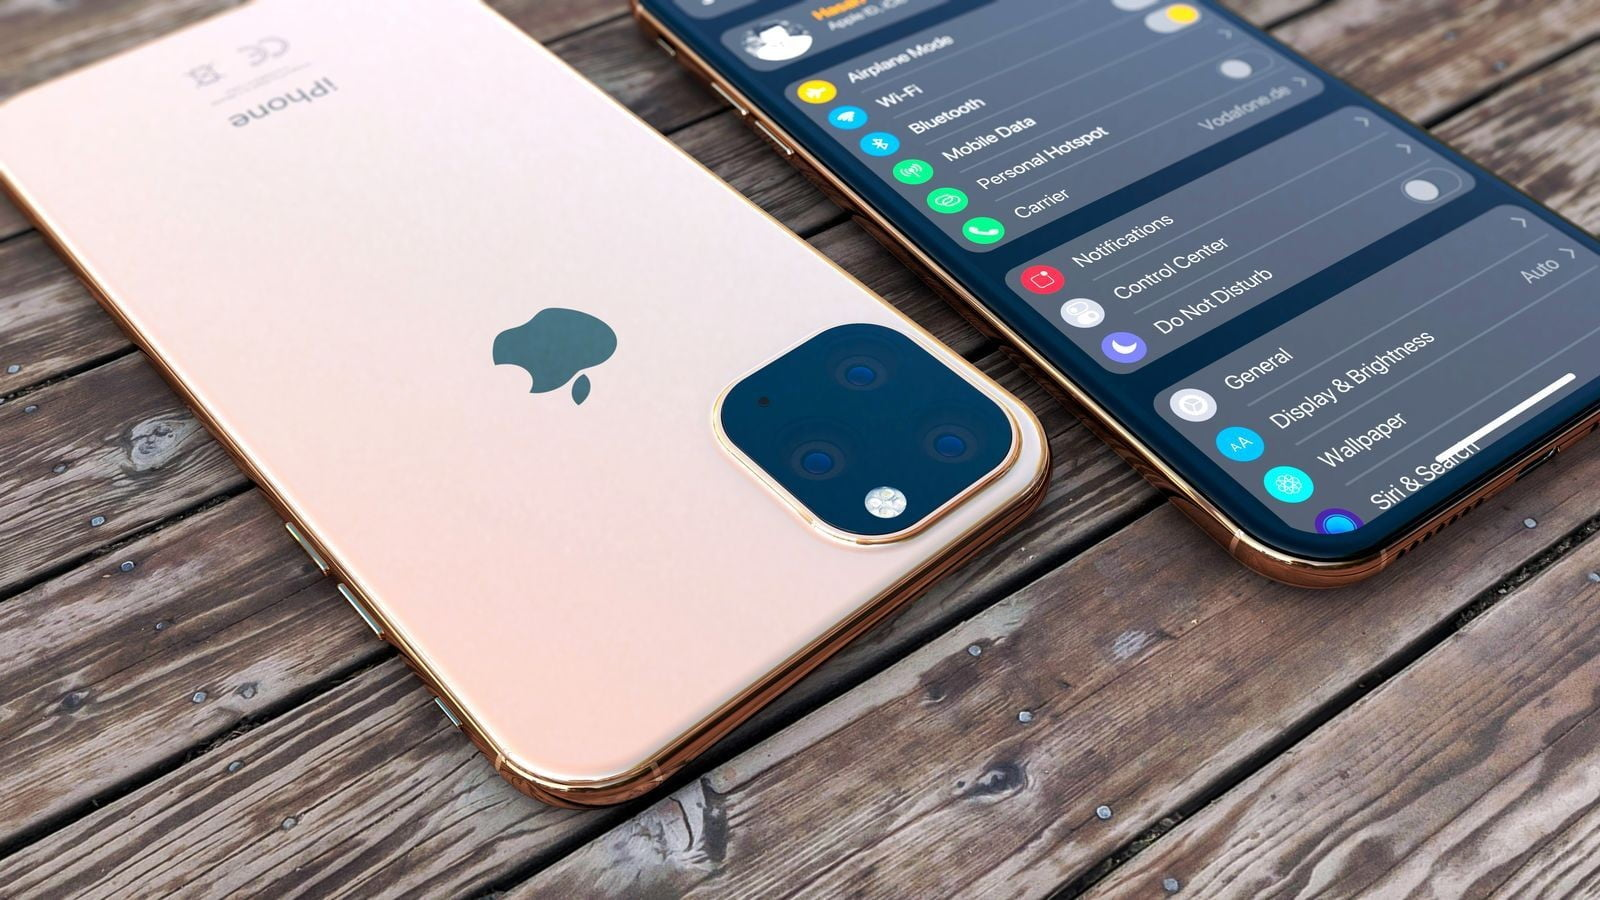 Here Are Top 4 Features We Expect To See On The iPhone 11